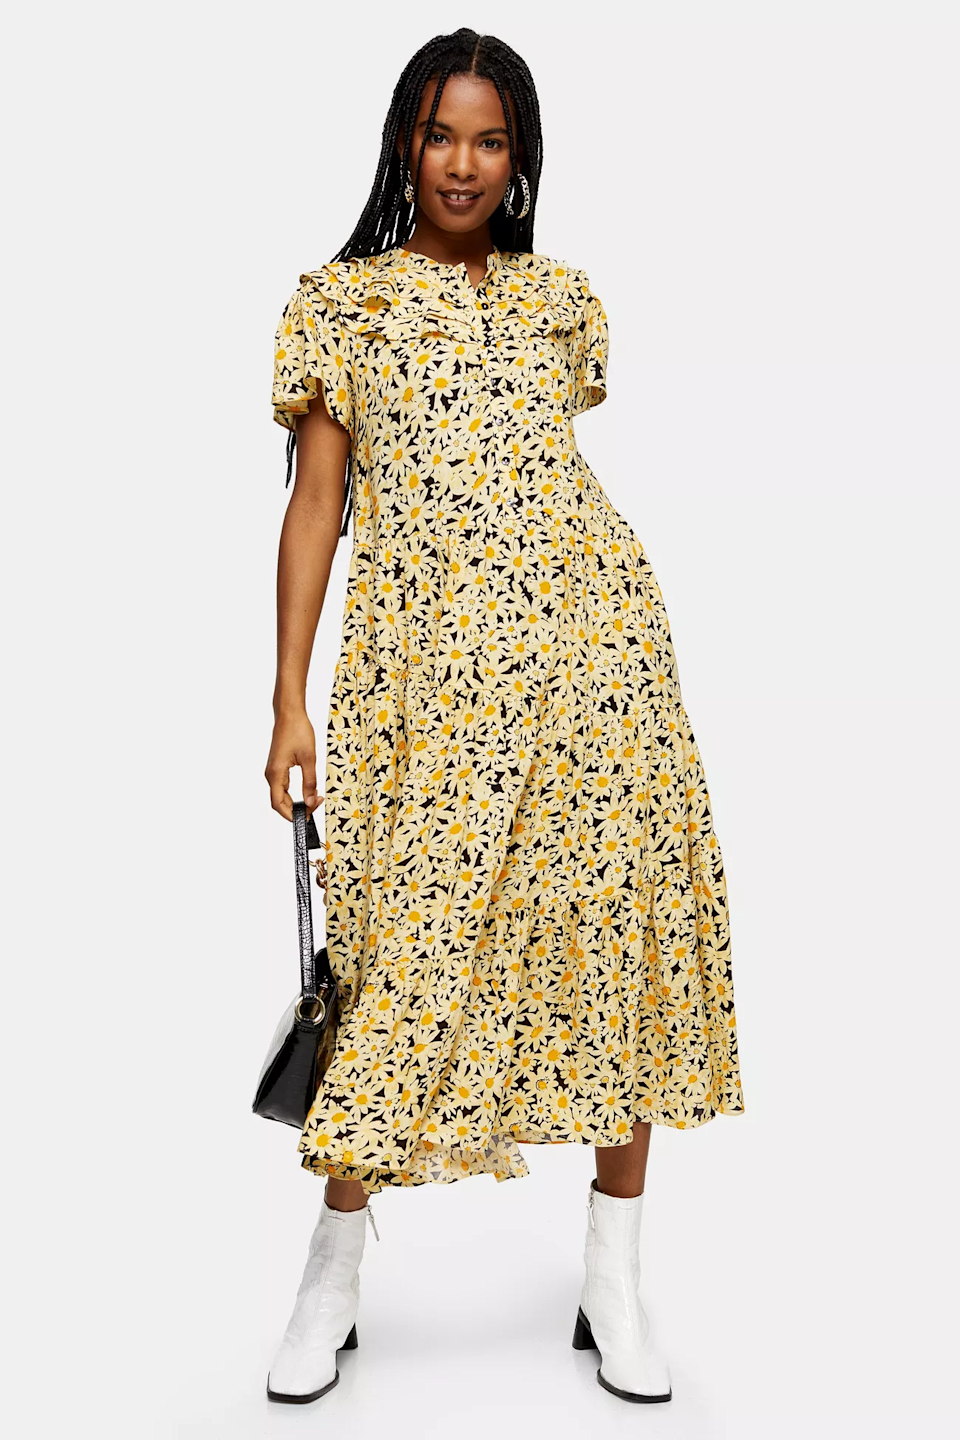 """Select summer dresses are <a href=""""https://us.topshop.com/en/tsus/category/clothing-70483/vacation-shop-4703423/dresses/N-b2hZqk3Zdgm?"""" rel=""""nofollow noopener"""" target=""""_blank"""" data-ylk=""""slk:on sale now at Topshop"""" class=""""link rapid-noclick-resp"""">on sale now at Topshop</a>. <br> <br> <strong>Topshop</strong> Yellow Daisy Grandad Midi Shirt Dress, $, available at <a href=""""https://go.skimresources.com/?id=30283X879131&url=https%3A%2F%2Fus.topshop.com%2Fen%2Ftsus%2Fproduct%2Fclothing-70483%2Fvacation-shop-4703423%2Fdaisy-grandad-midi-shirtdress-9757112"""" rel=""""nofollow noopener"""" target=""""_blank"""" data-ylk=""""slk:Topshop"""" class=""""link rapid-noclick-resp"""">Topshop</a>"""